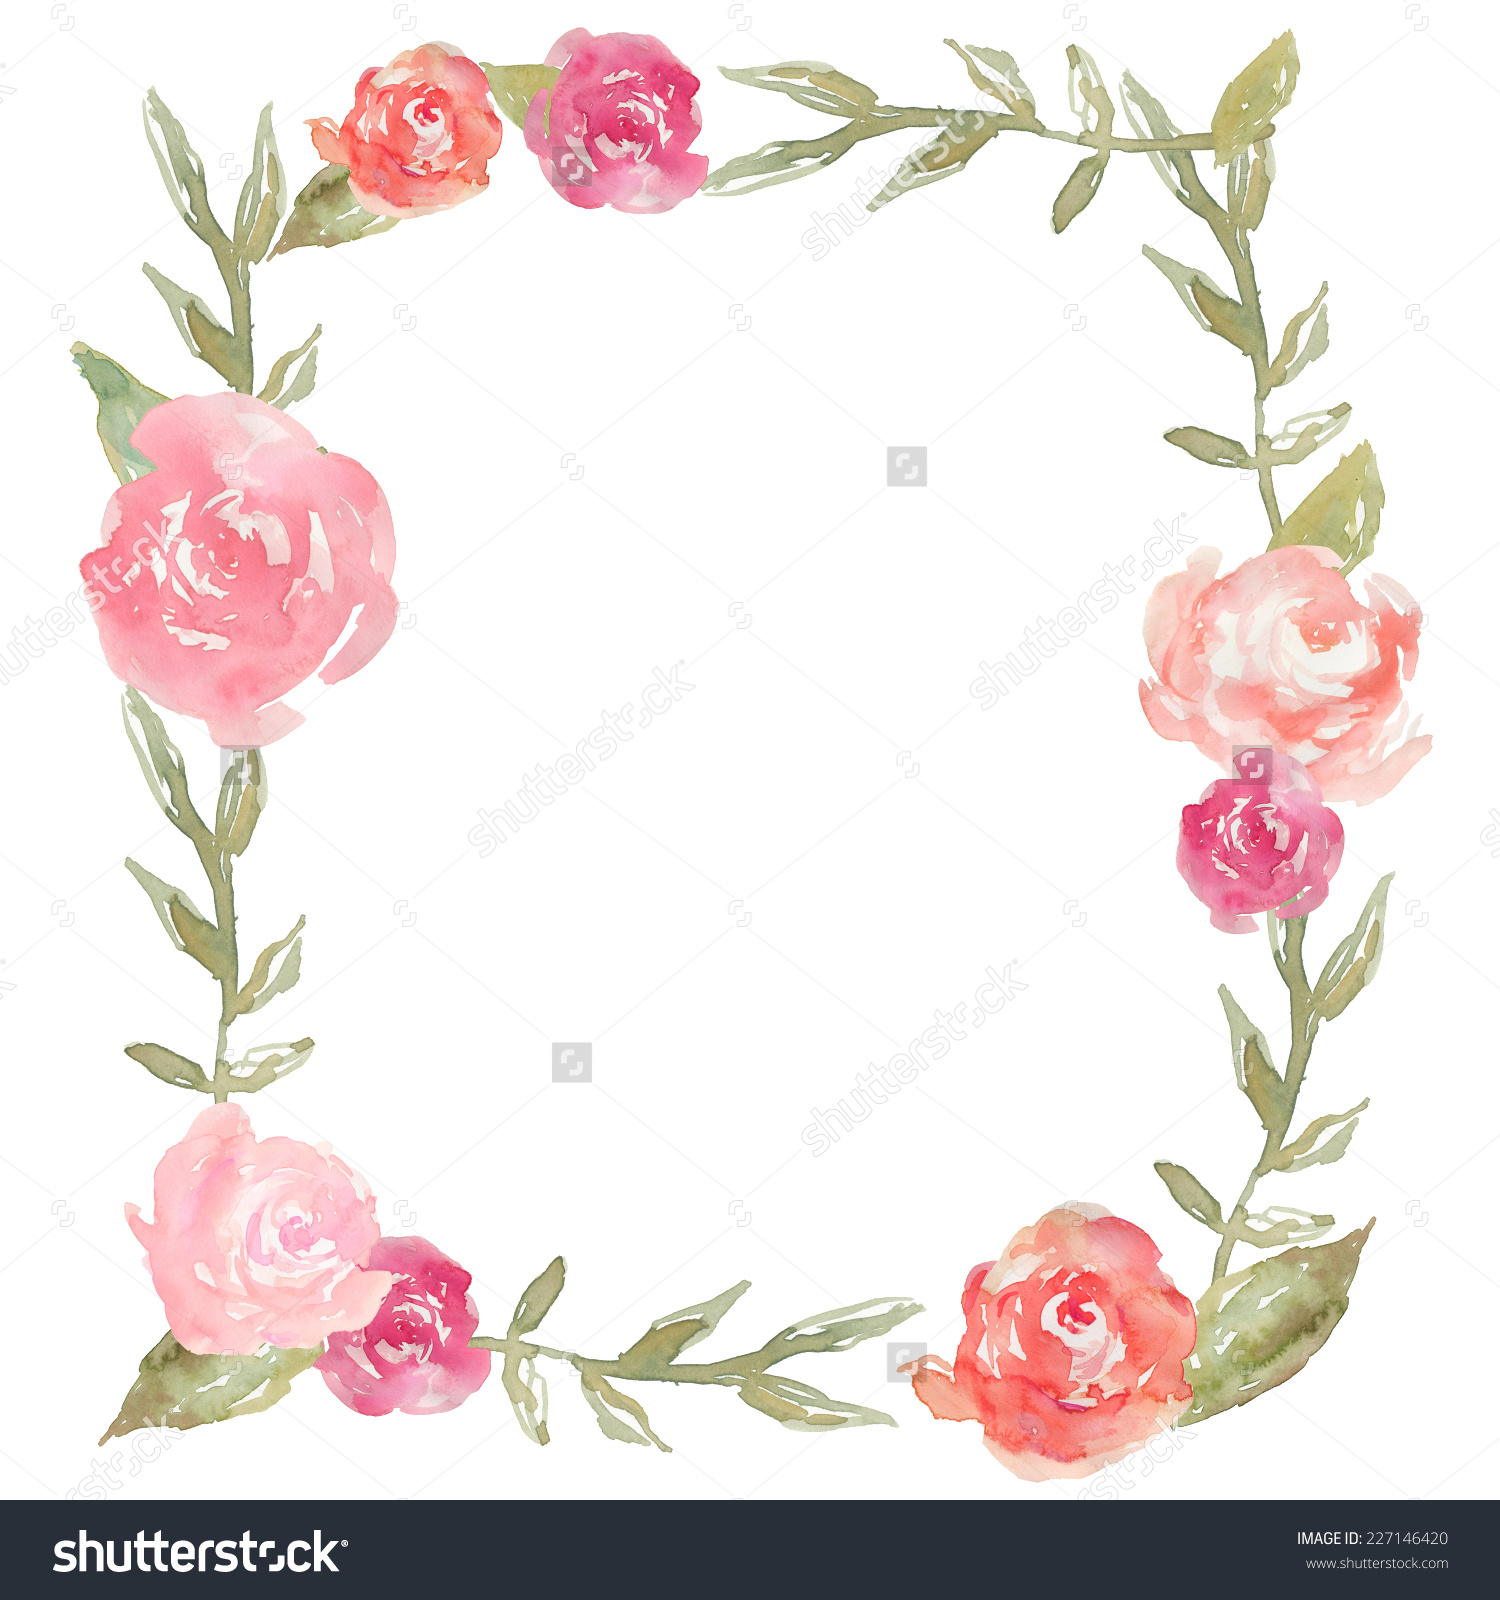 Square clipart watercolor Watercolor Peony With Peony Wreath